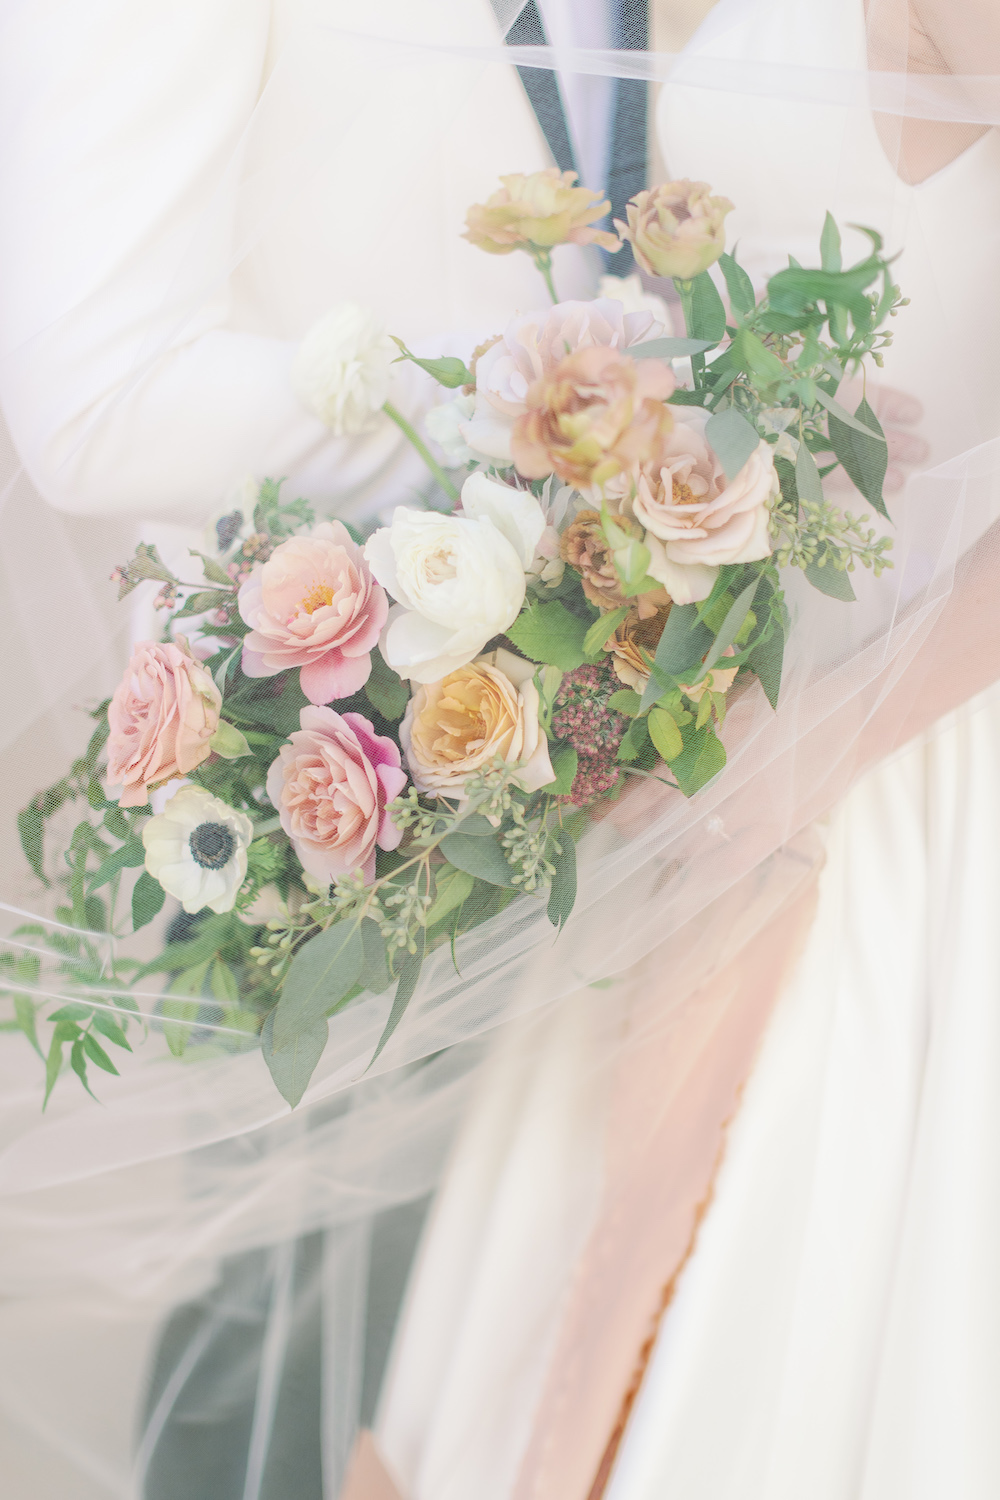 Veil and Romantic Blush Wedding Bouquet